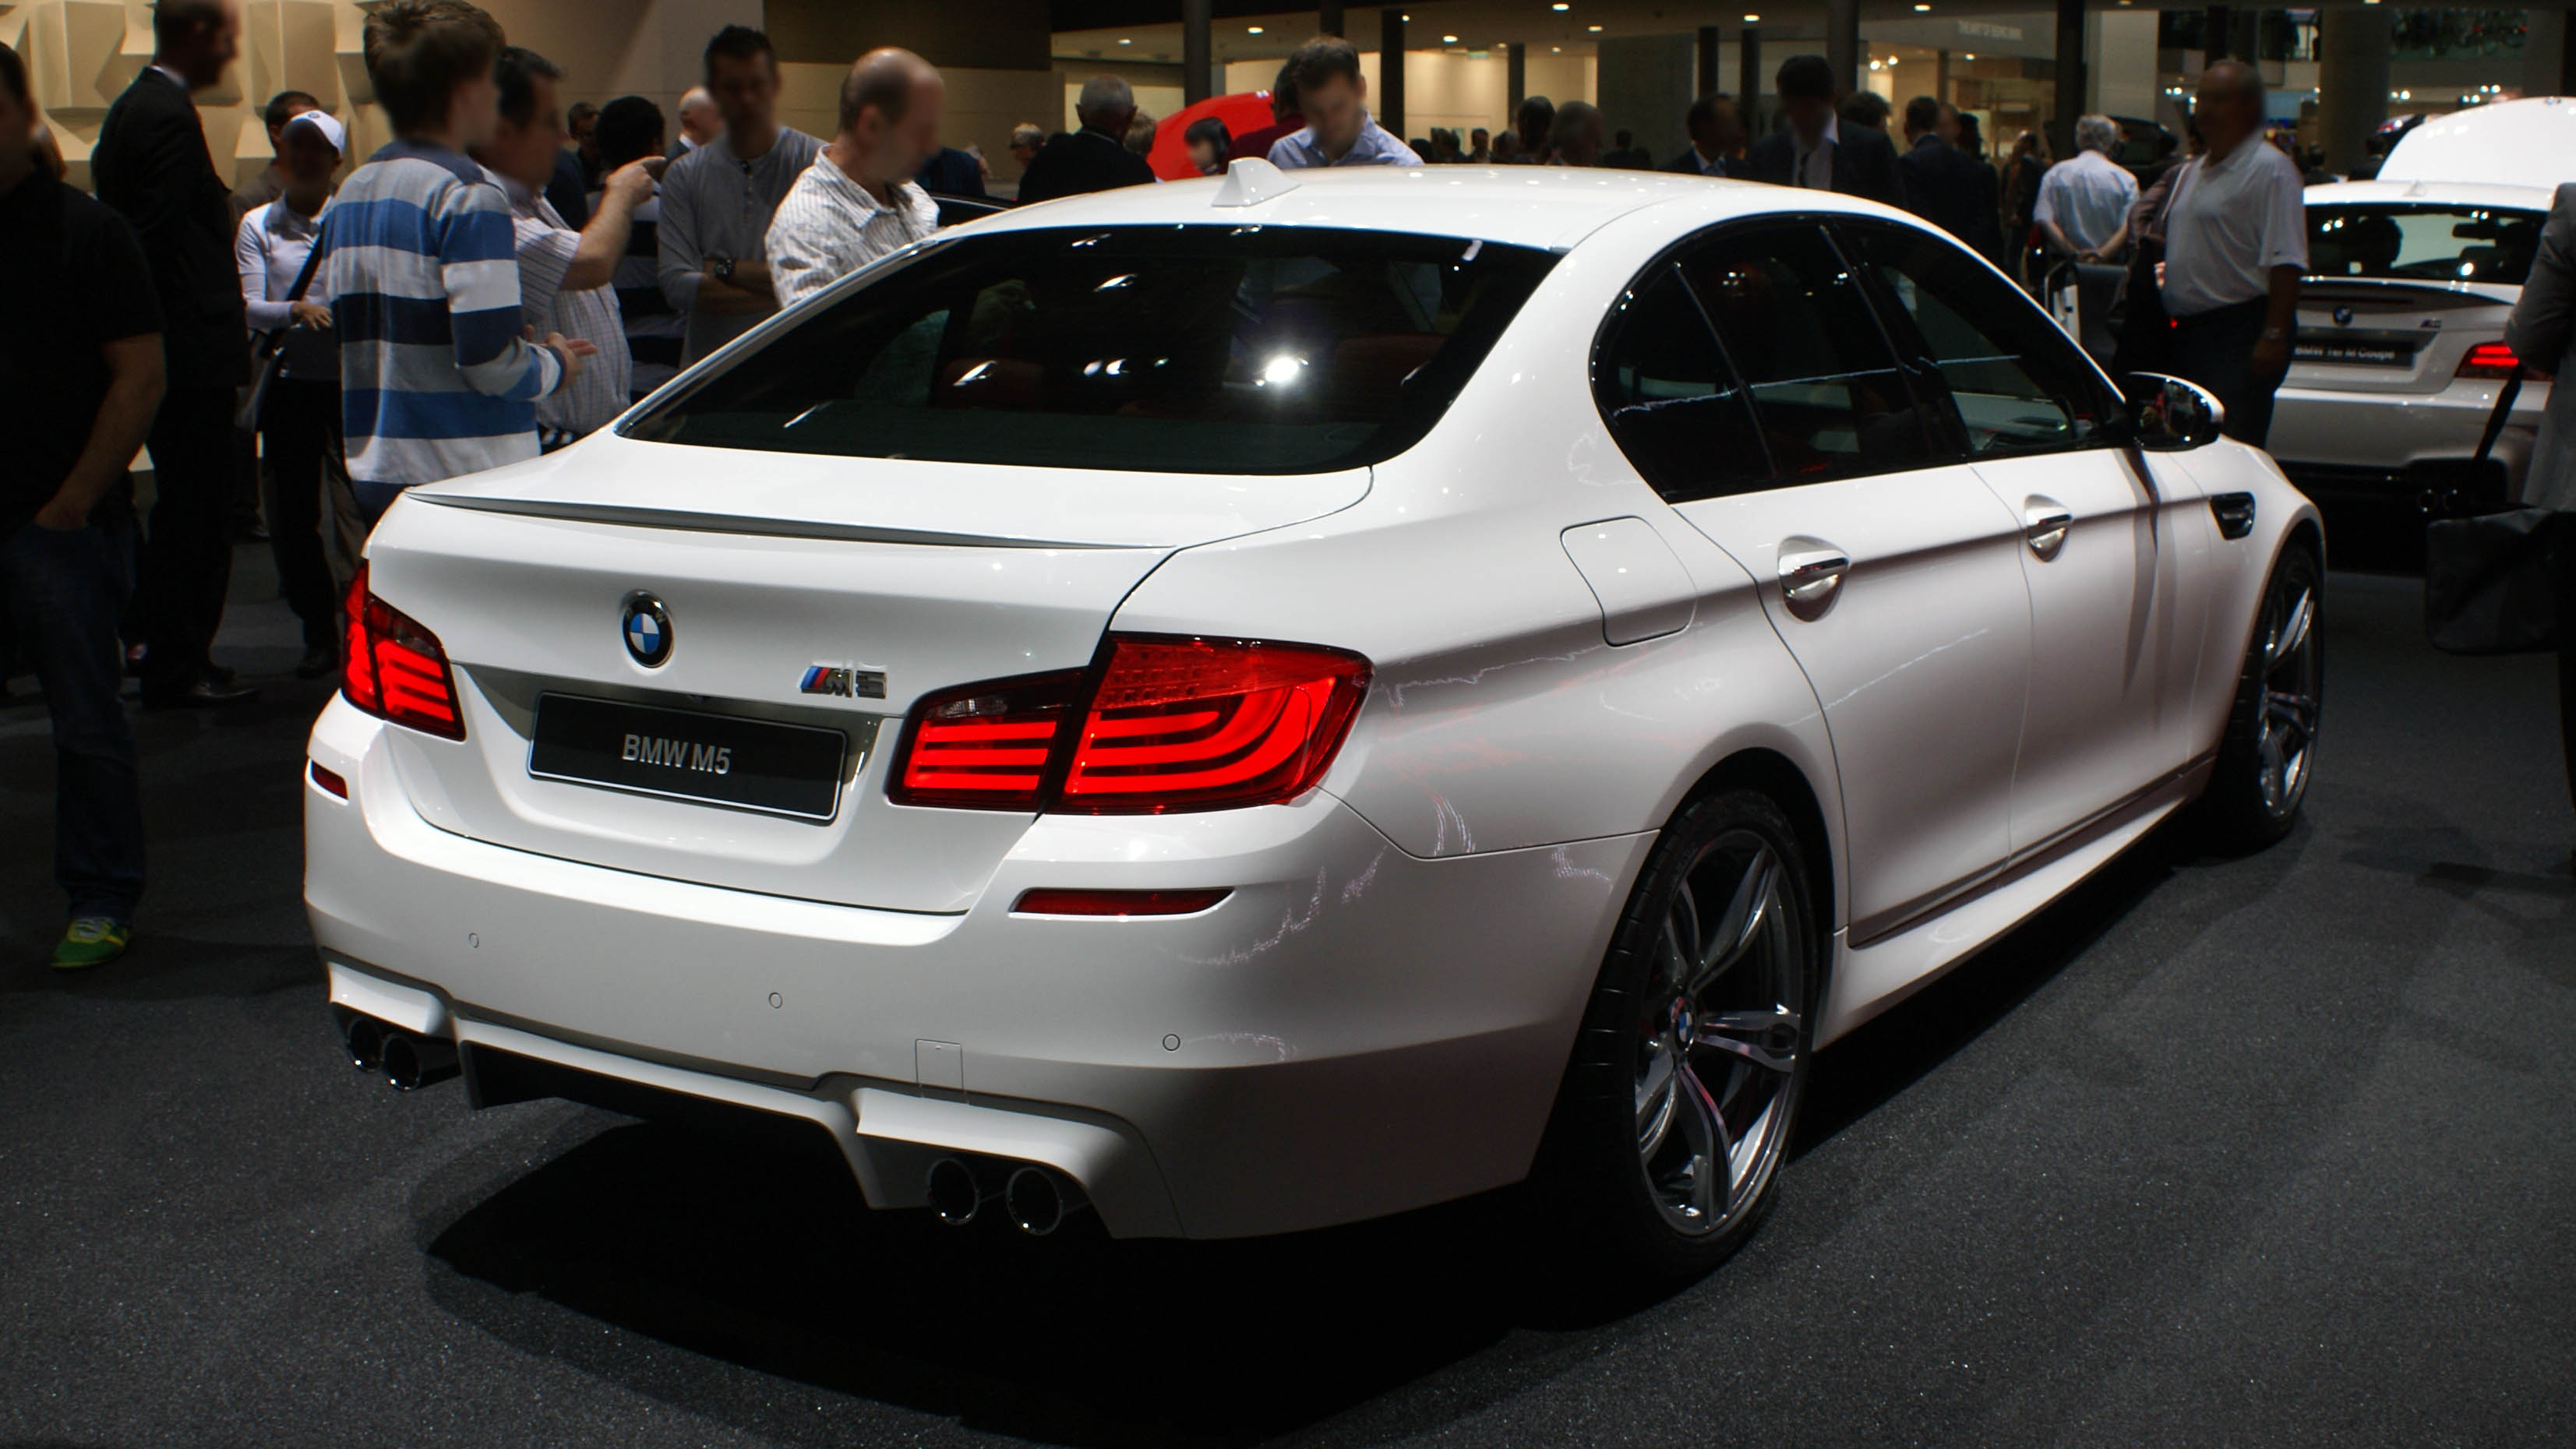 BMW M5  Review and photos